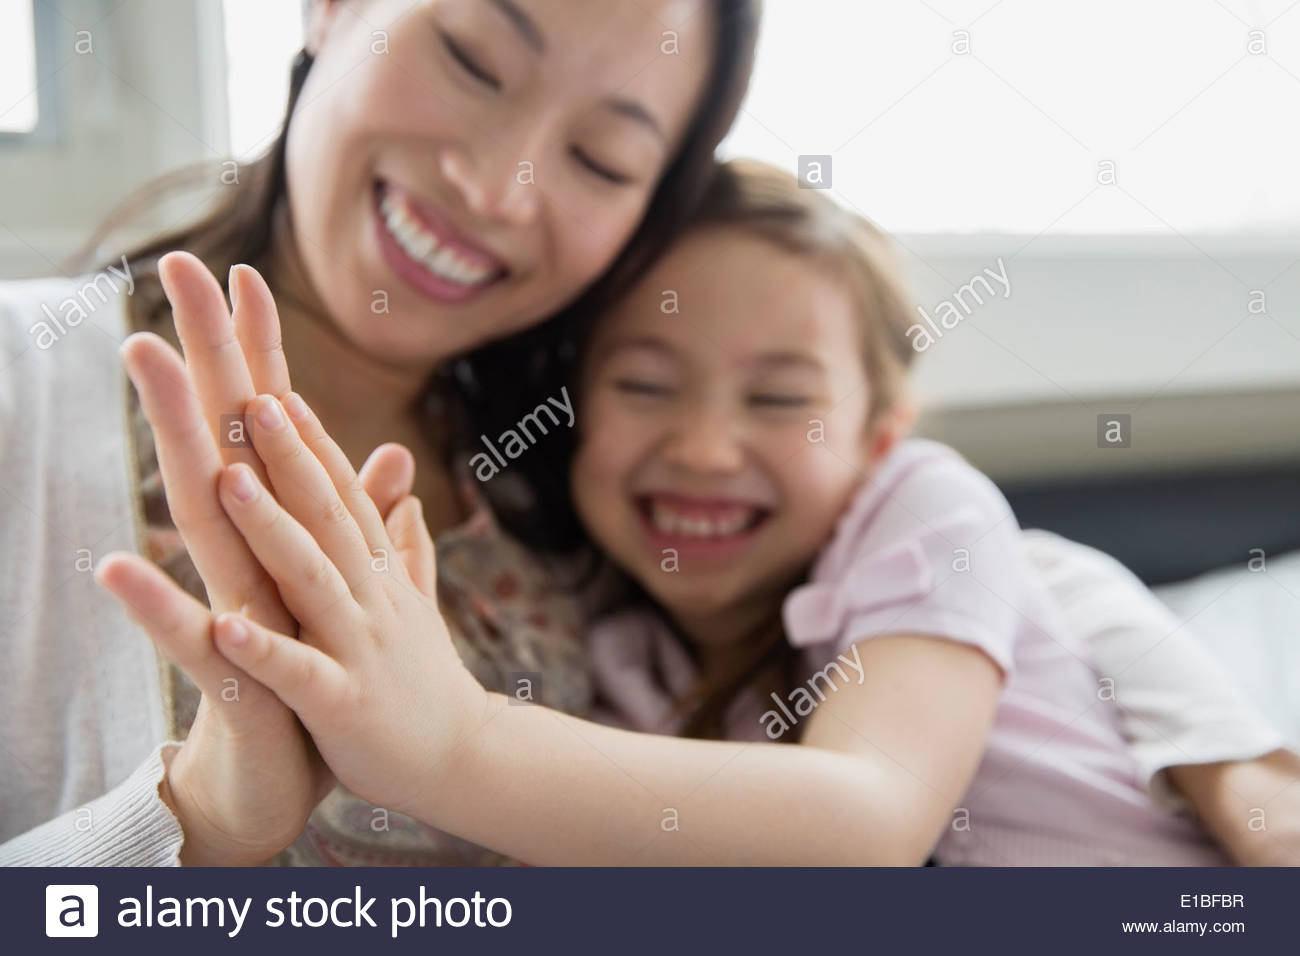 Mother and daughter touching hands - Stock Image